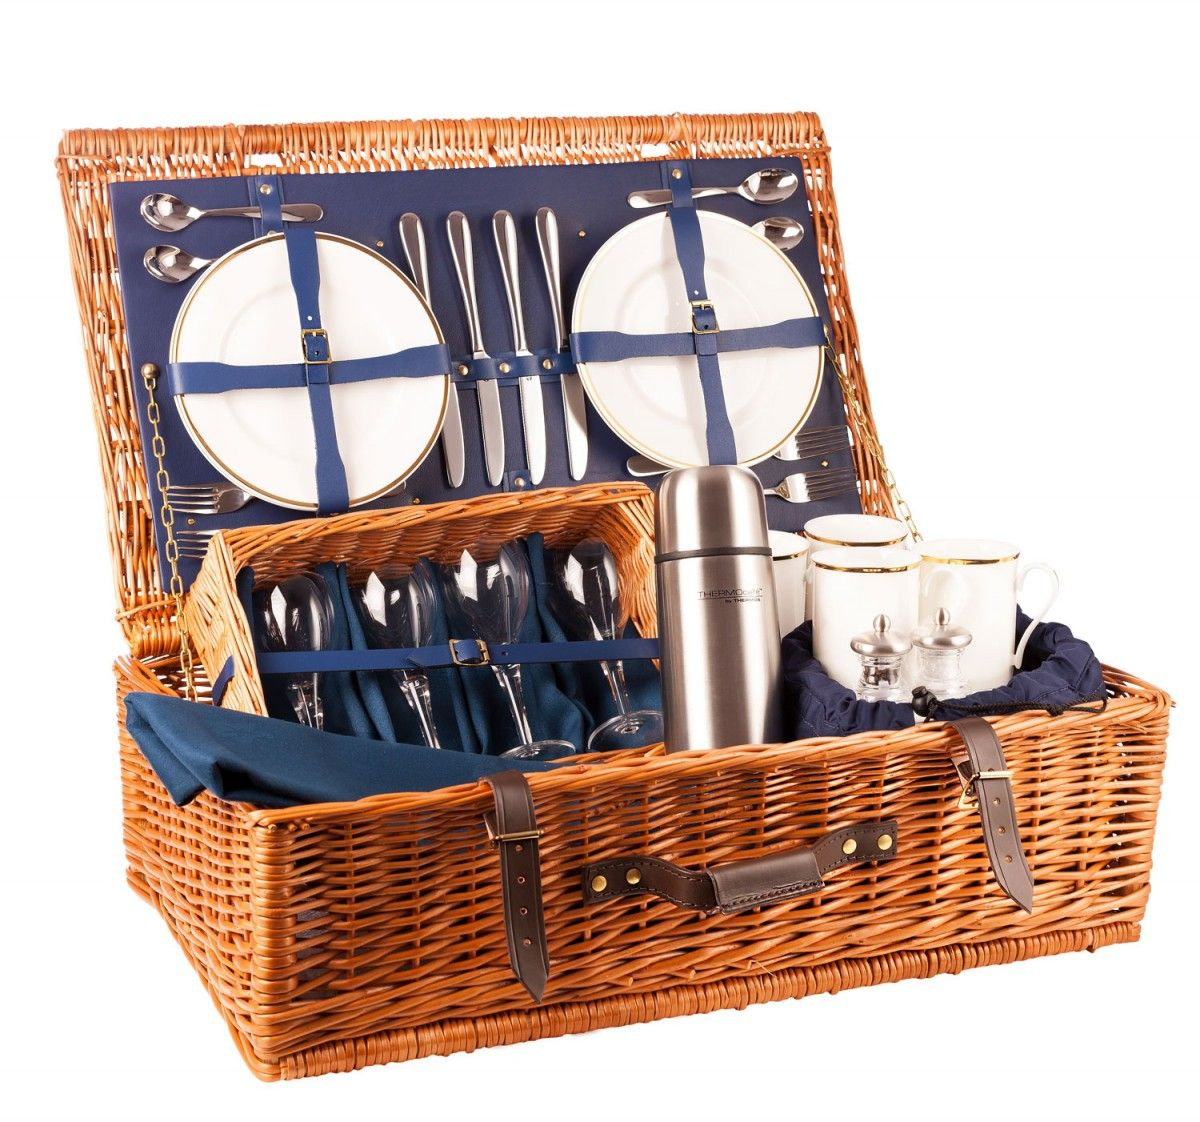 The Ascot Luxury Picnic Hamper – 4 place settings in blue